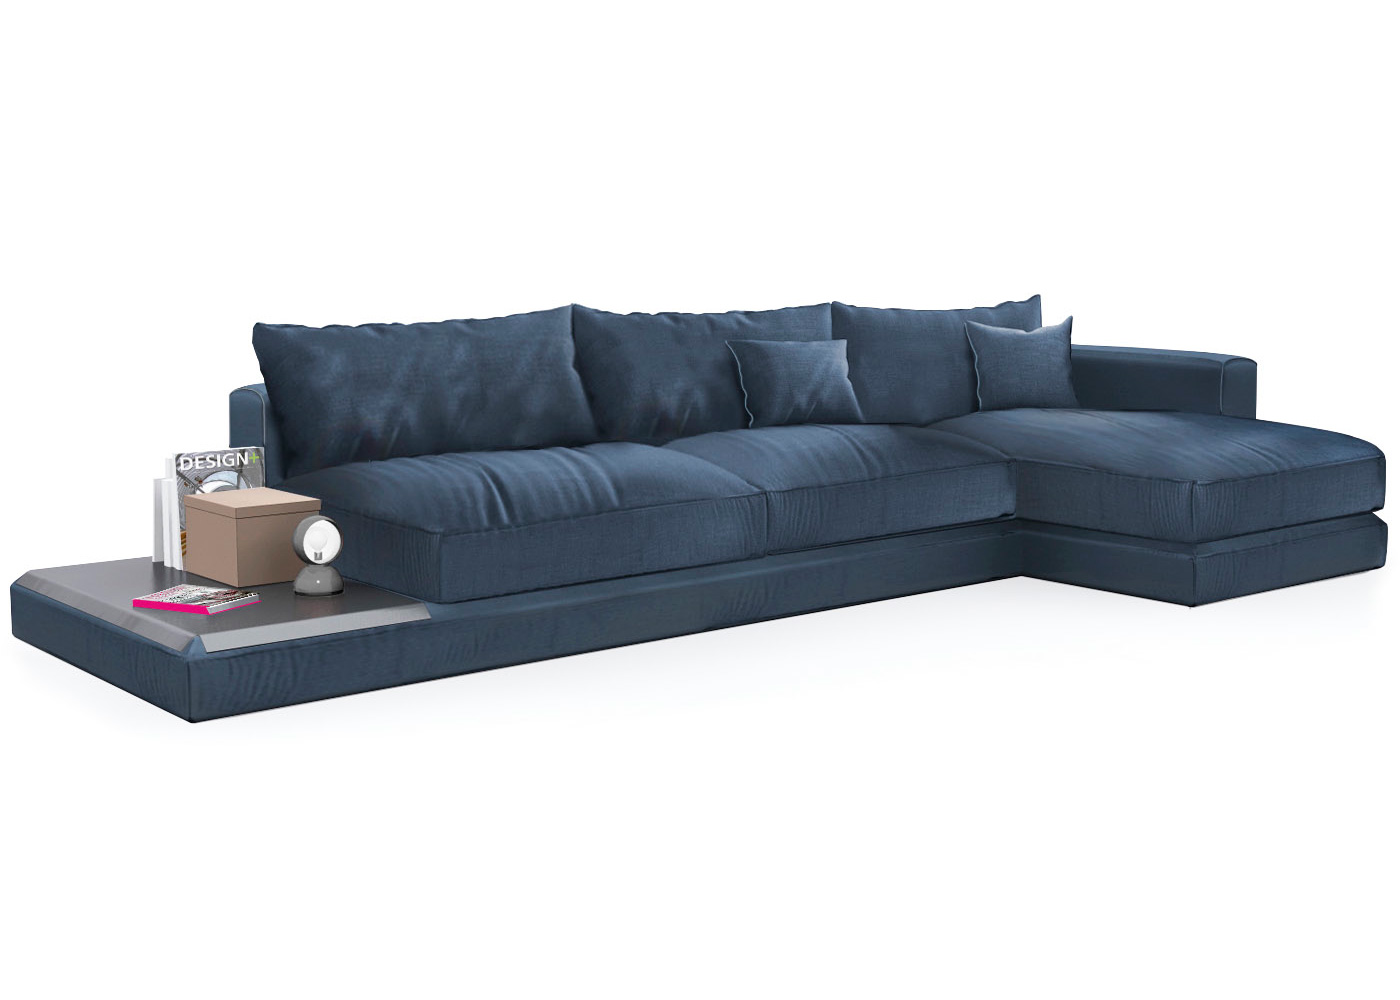 Chaise Calligaris Calligaris Kora Chaise Sofa Inlcuding Leather Tray